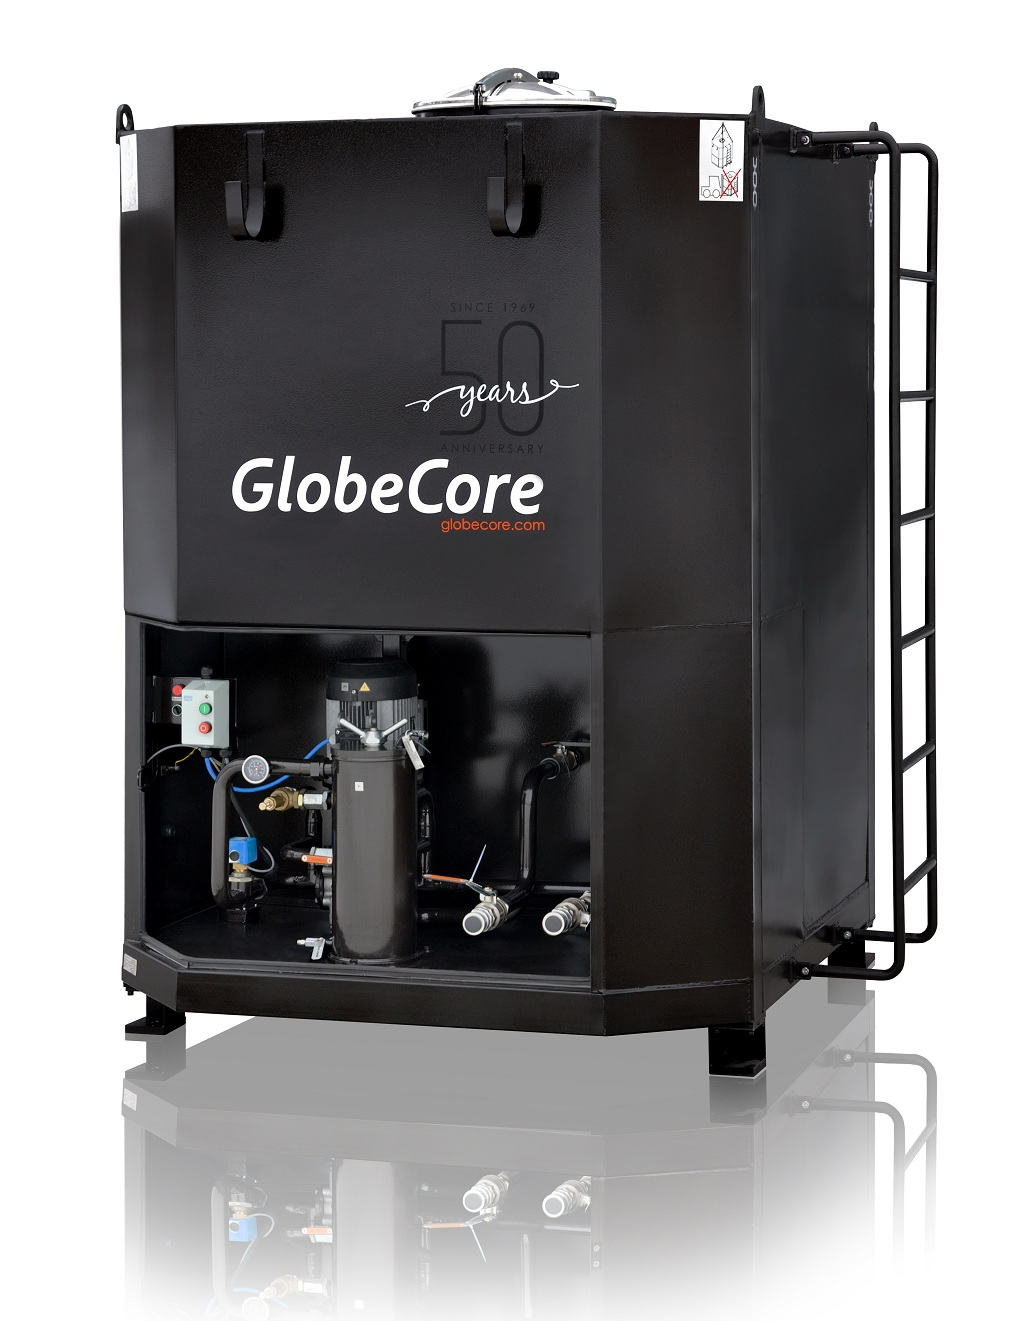 Home Water Filtration Systems >> Oil filtration - Transformer Oil filtration Systems GlobeCore